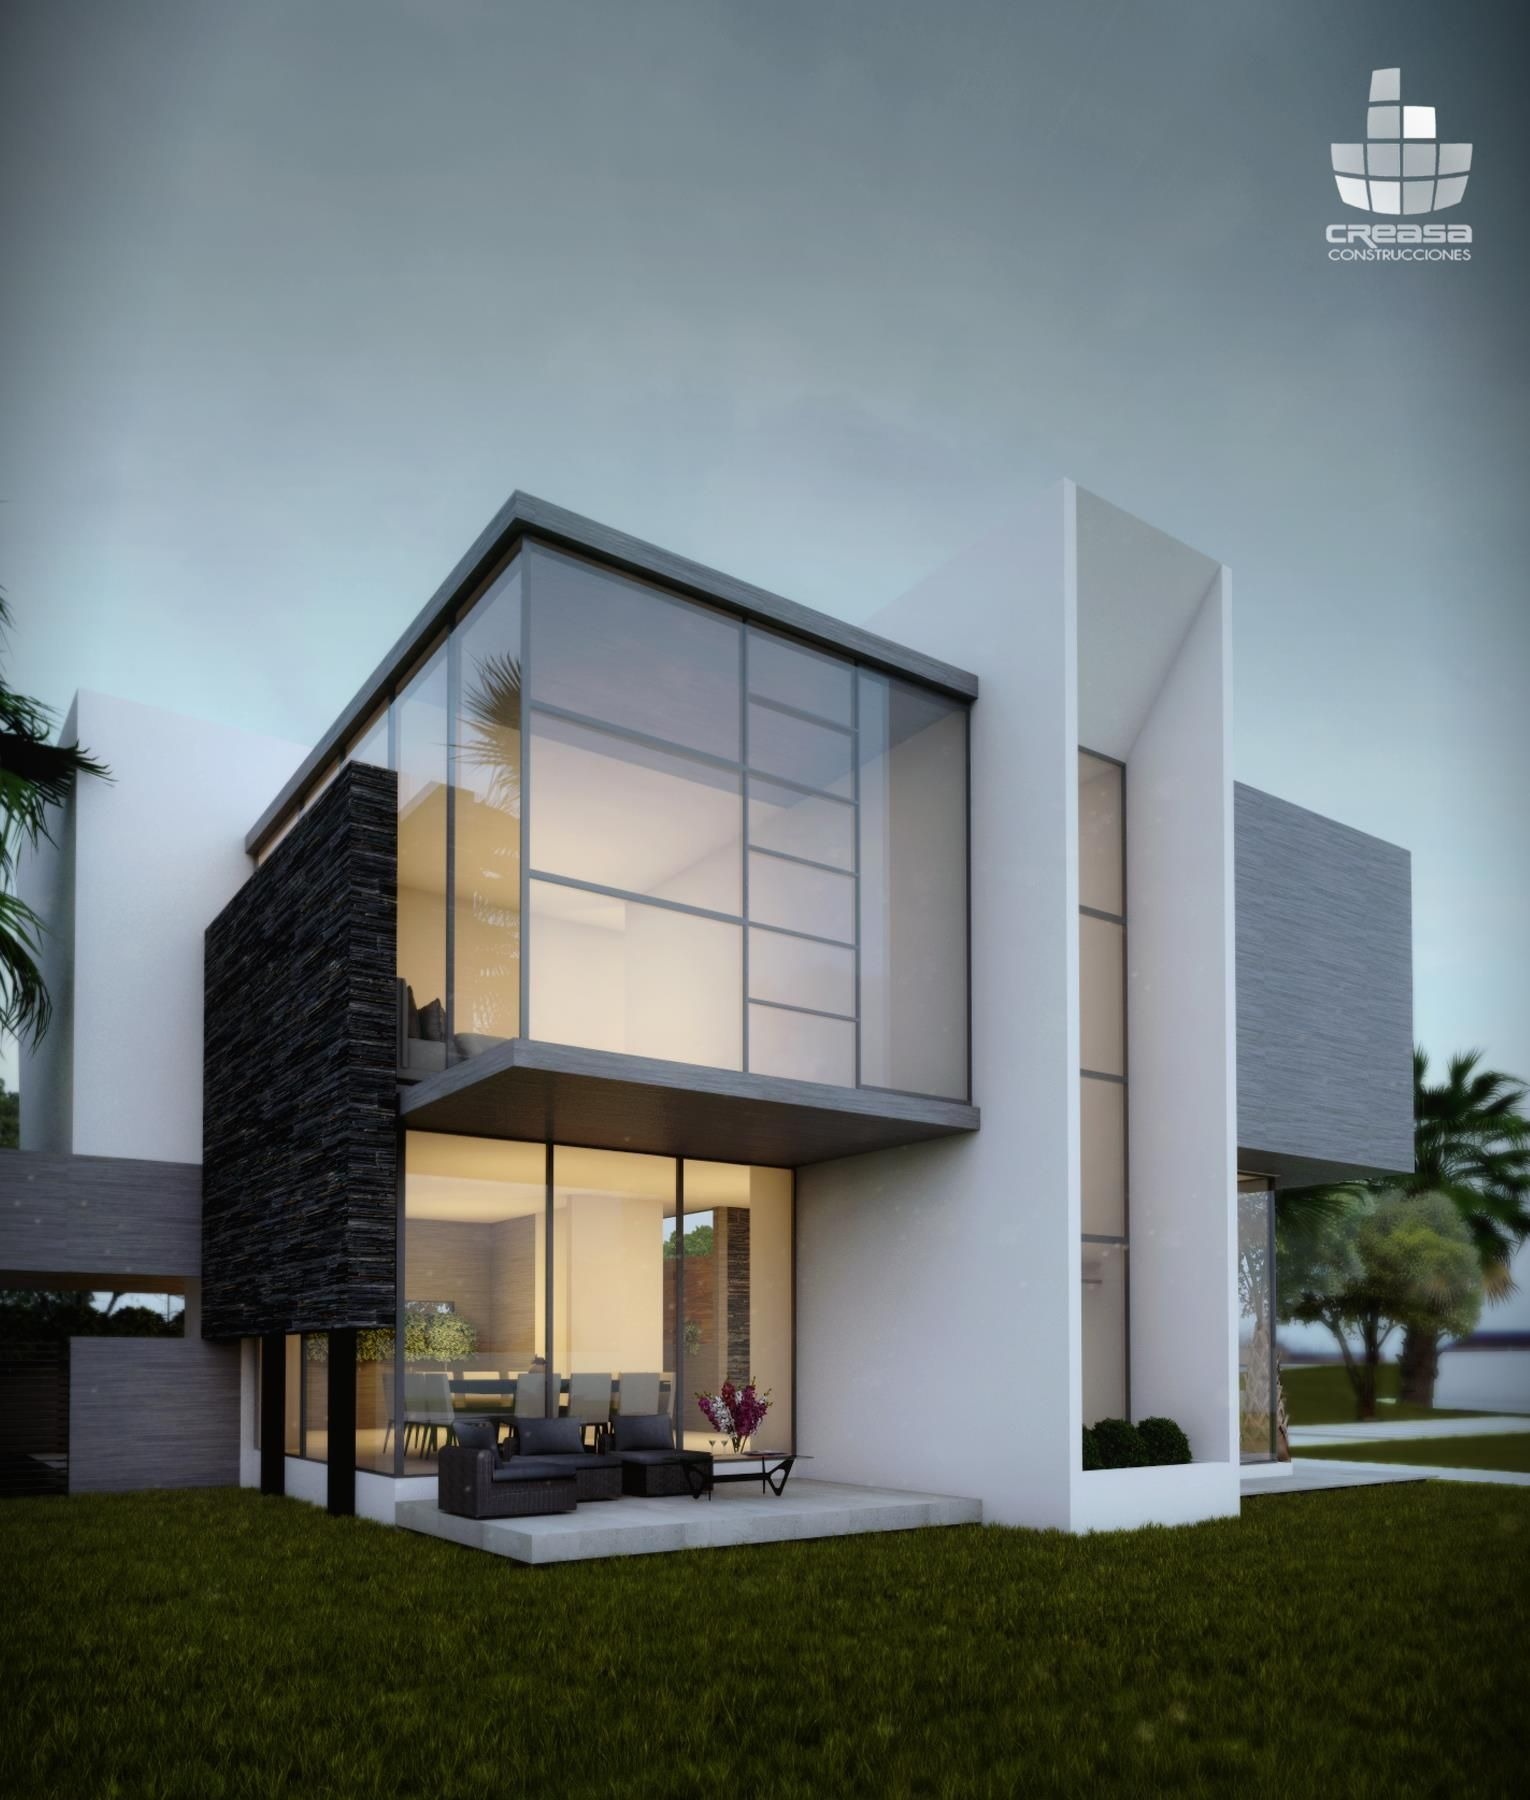 Creasa modern architecture pinterest villas house for Modern architecture design